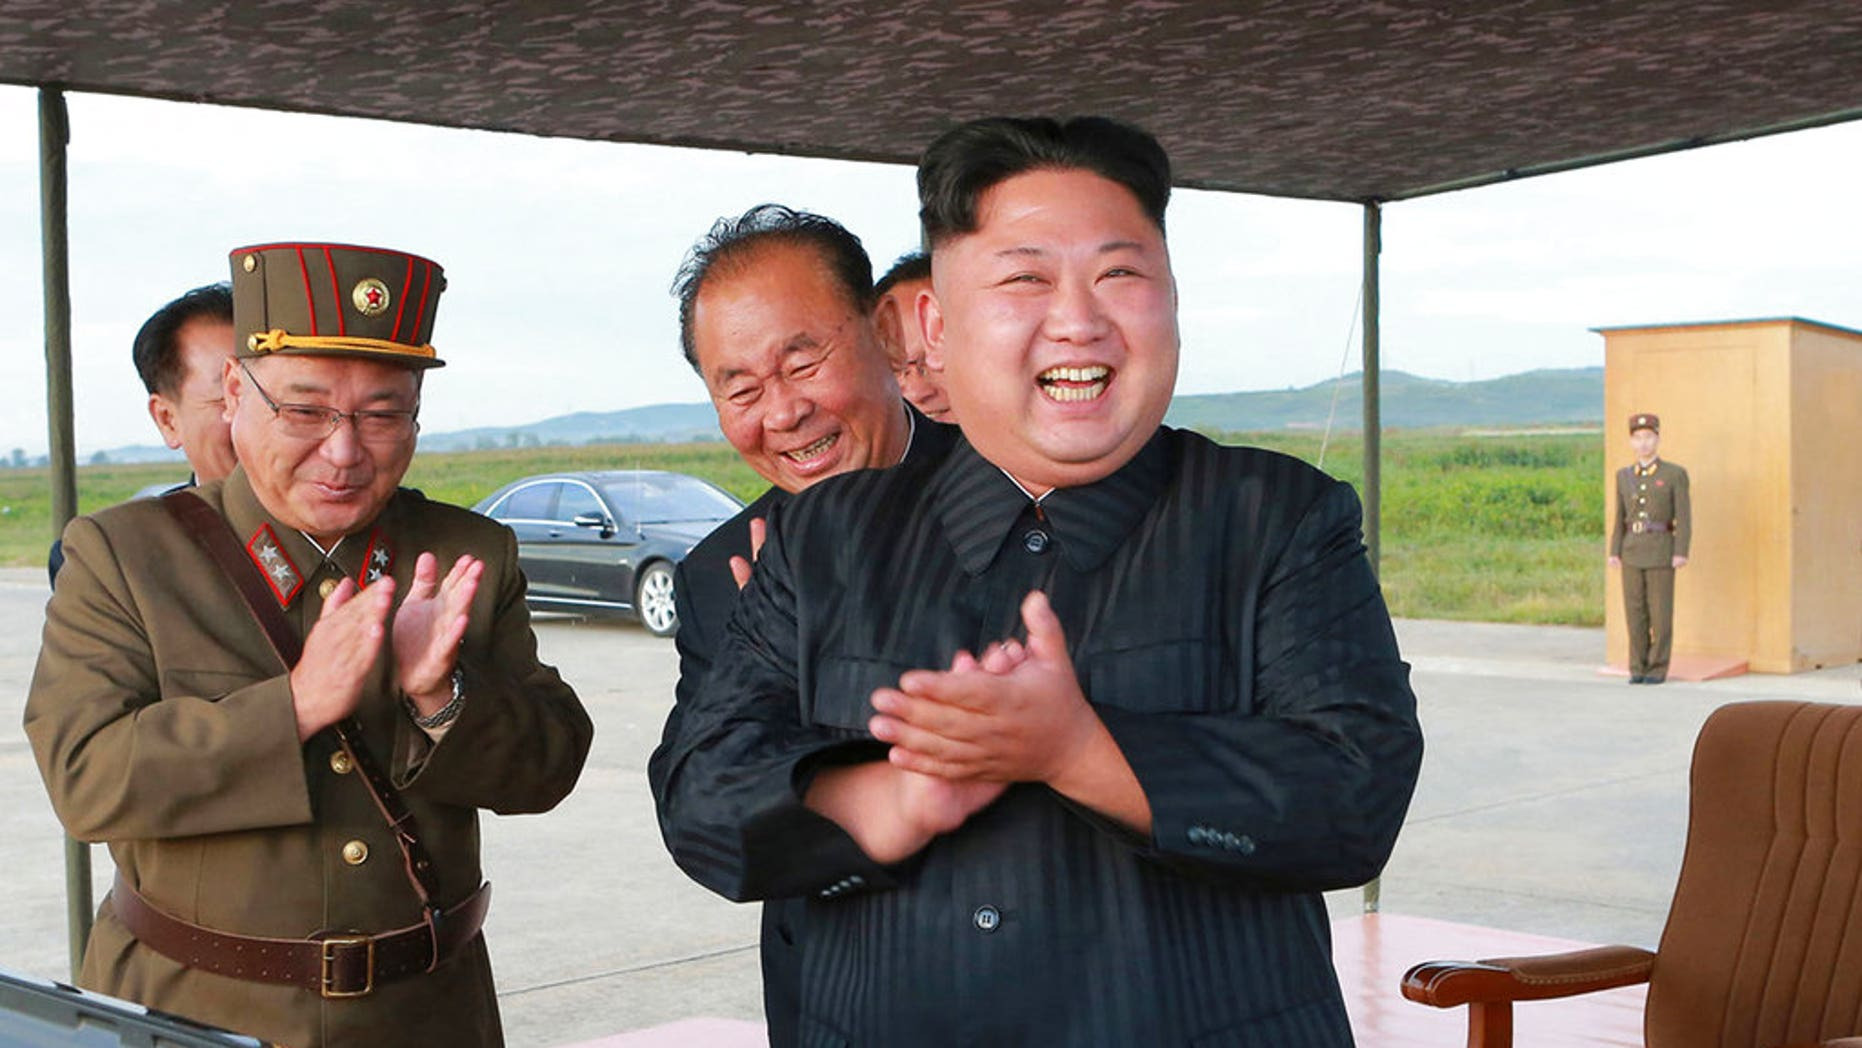 North Korean leader Kim Jong Un celebrates what was said to be the test launch of a Hwasong-12 missile, in an undated government photo that was distributed Sept. 16, 2017.